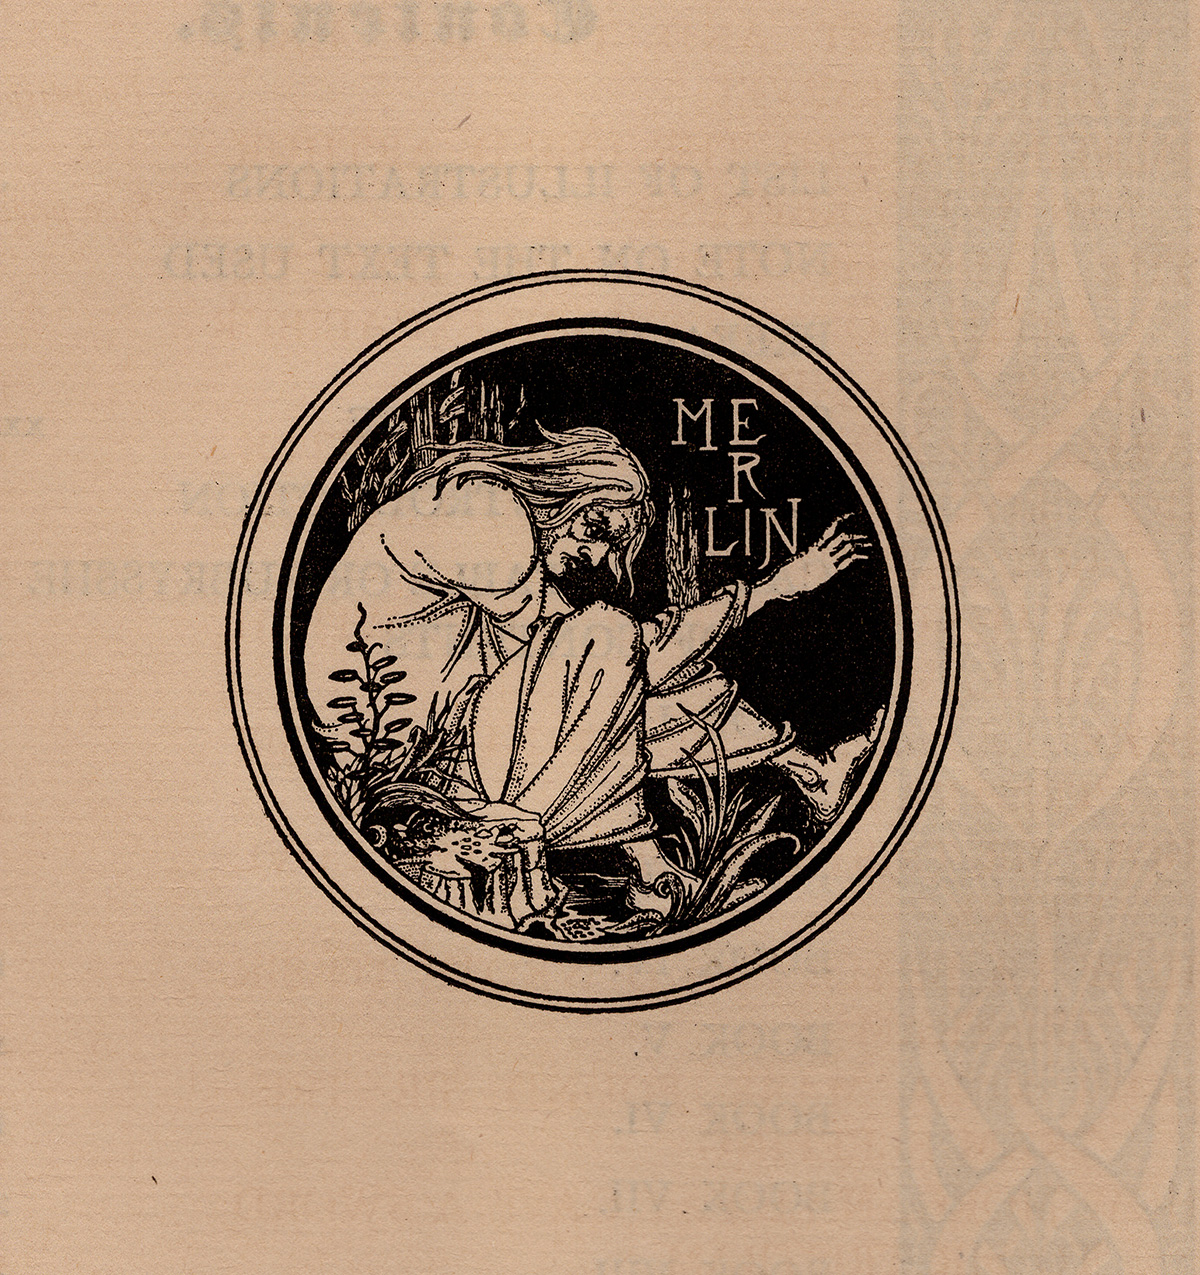 Aubrey Beardsley, Merlin, 1893-94, from an illustrated version of Thomas Malory's Arthurian cycle. Collection of Patrick M. Rowe.